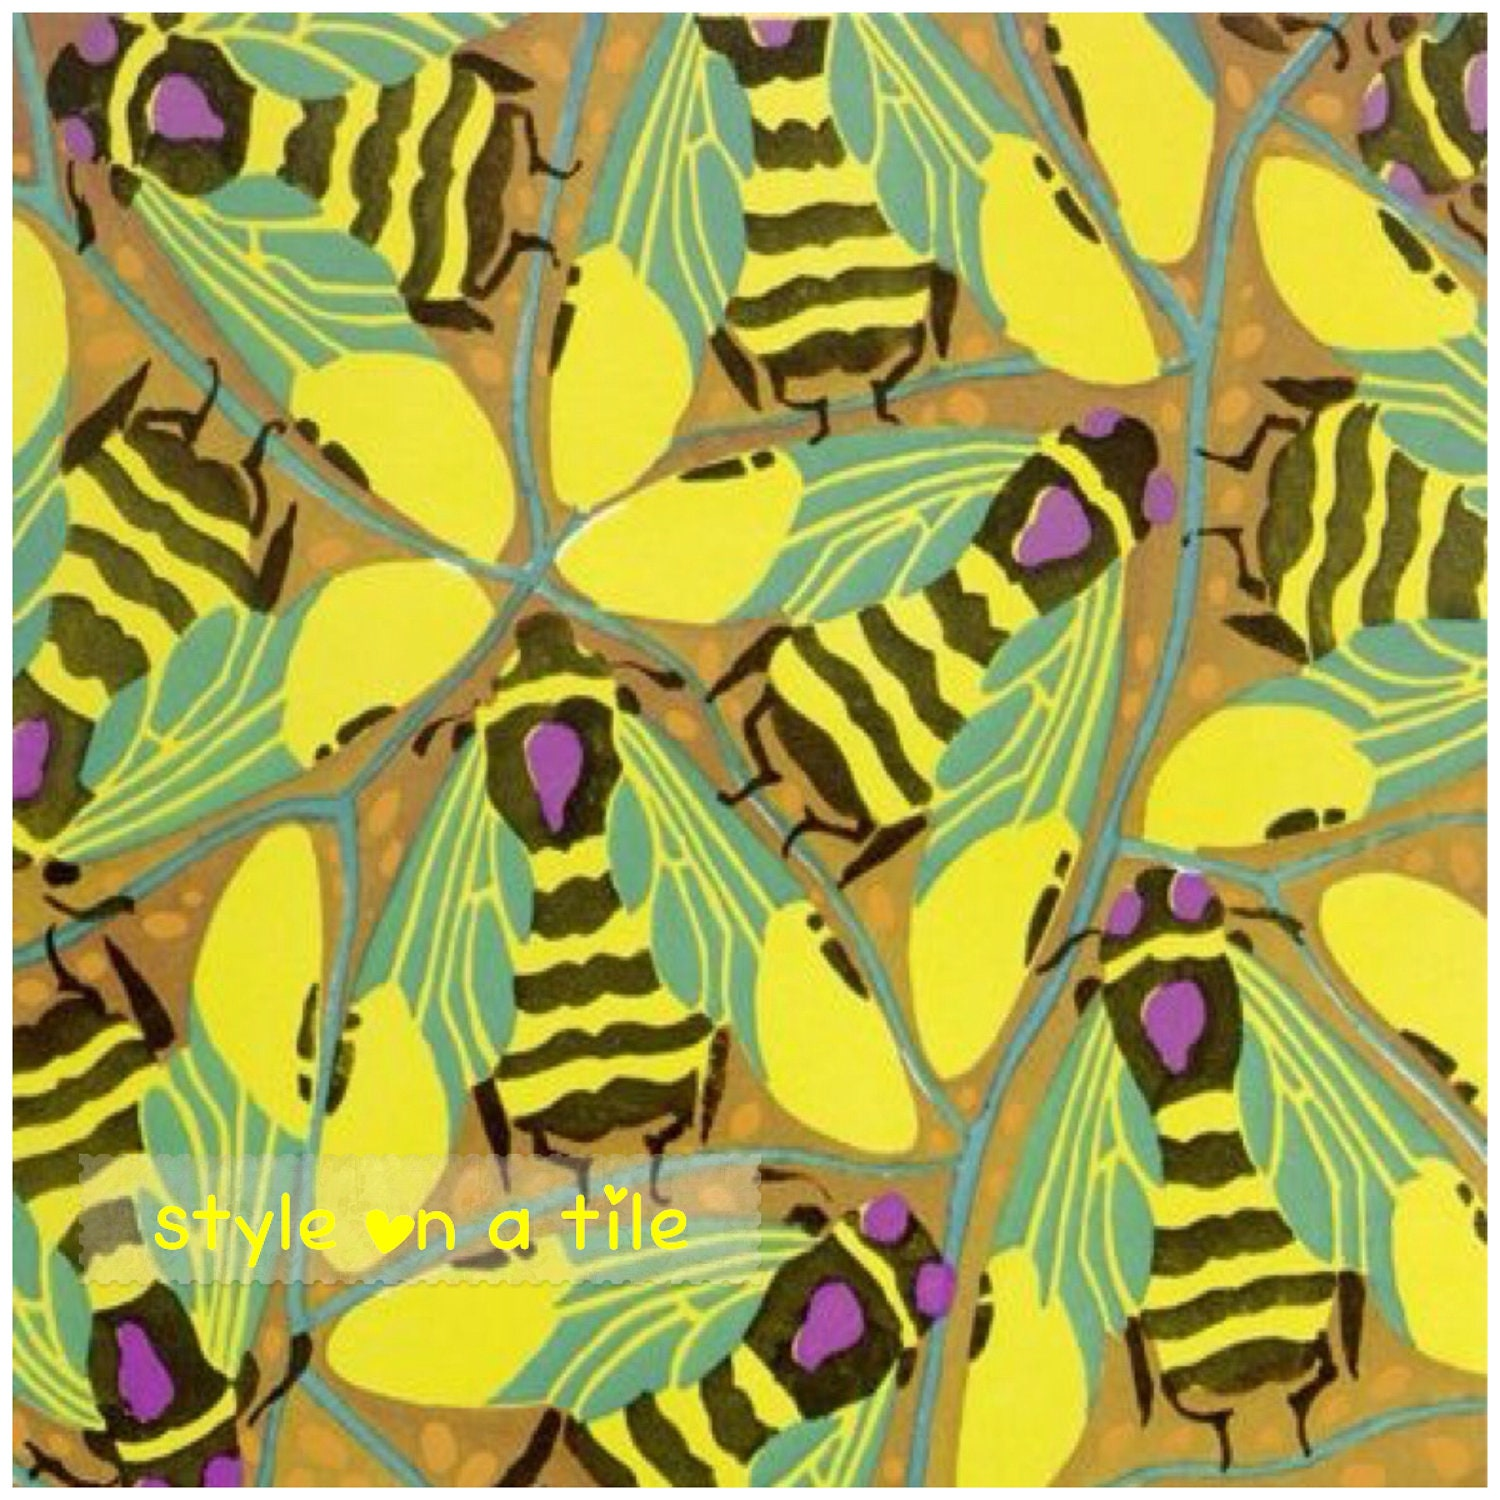 Art deco eugene seguy bumblebee bee insects 6152mm ceramic tile art deco eugene seguy bumblebee bee insects 6152mm ceramic tile trivet kitchen bathroom walls splash backs fireplace tile plant stands dailygadgetfo Choice Image